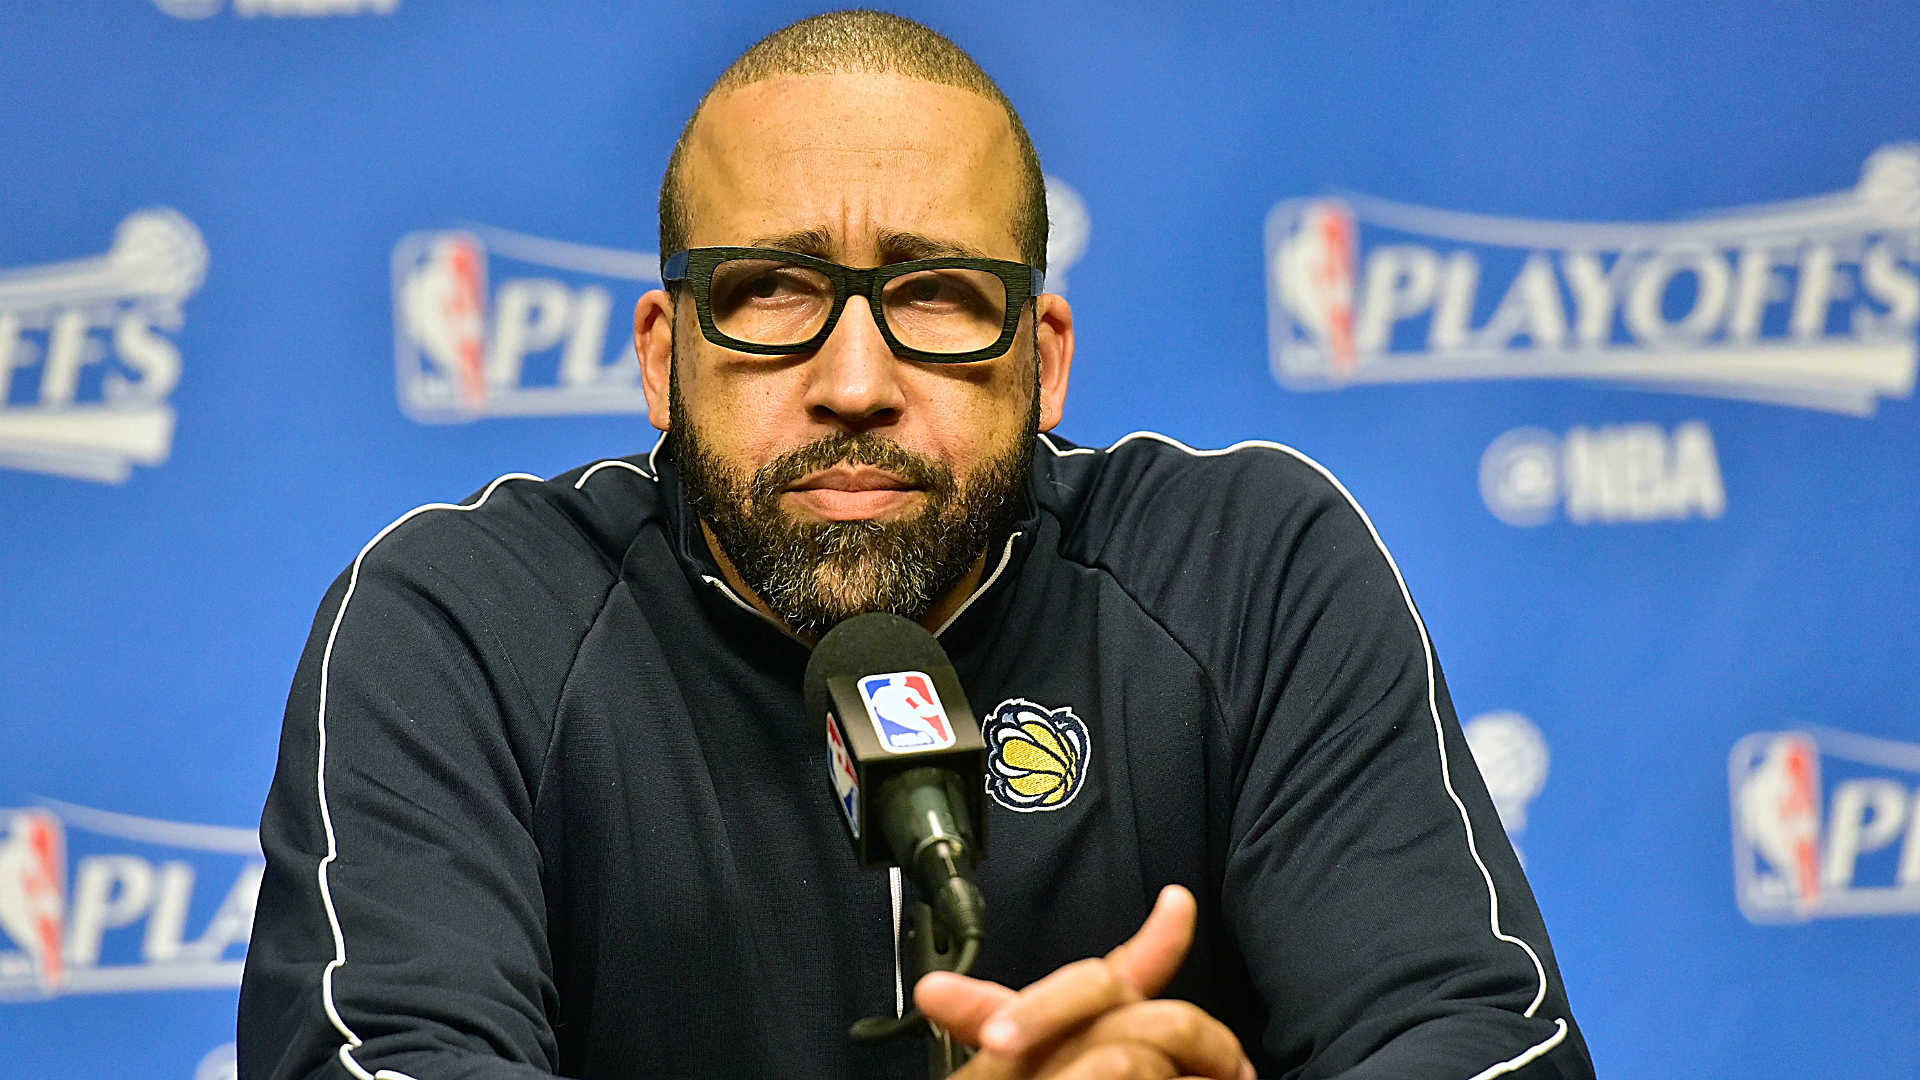 David Fizdale delivers on big promises he made to Grizzlies — and himself